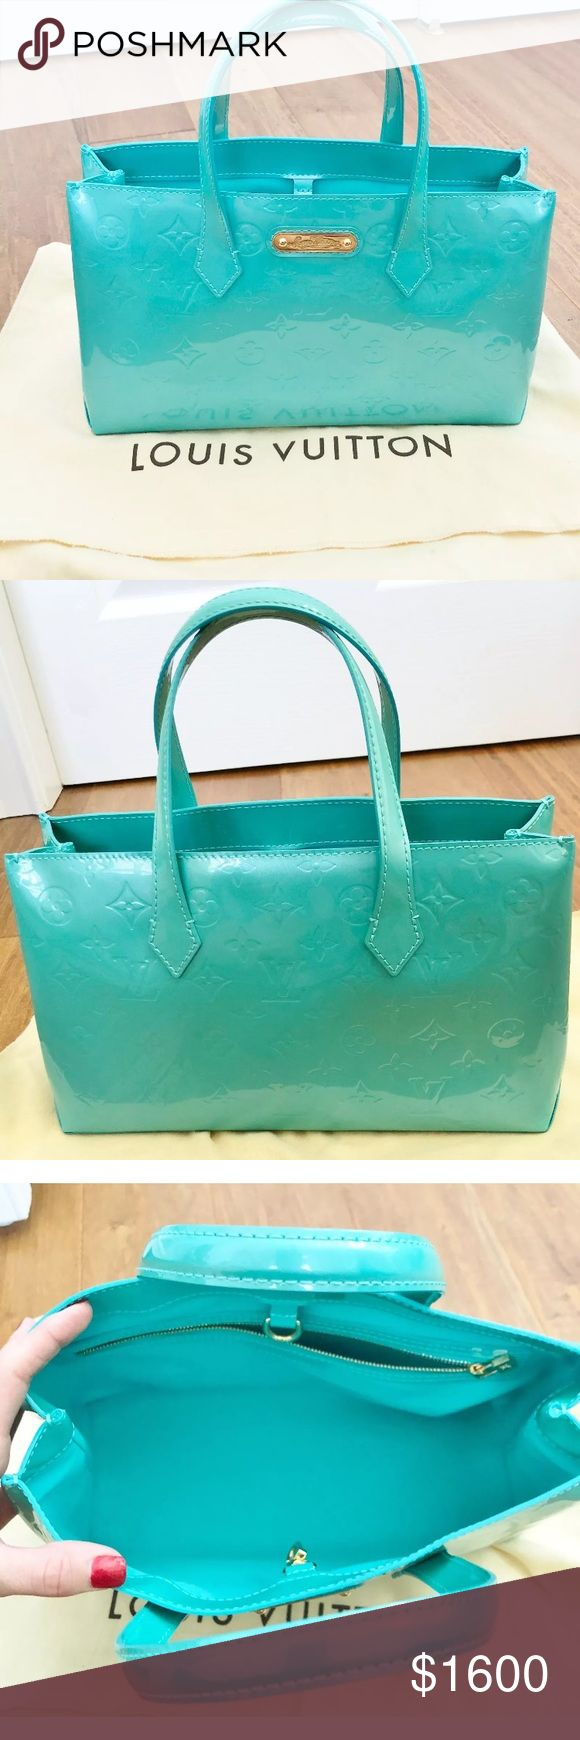 LOUIS VUITTON Tiffany Blue Lagoon Bag Authentic GORGEOUS 100% AUTHENTIC LOUIS VUITTON TREASURE  Louis Vuitton Wilshire PM Limited Edition Monogram Vernis Blue Lagoon (Tiffany Blue) NEW without tags  BAG IS NEW IN MINT CONDITION - PLEASE SEE ALL PHOTOS - COMES W ORIGINAL LV DUST BAG! This one won't last long so scoop it up now!  Item is from a HUGE closet clean-out sale with tons of high end designer things!  From smoke-free home and shipped quickly via USPS priority. Comes with dust bag…